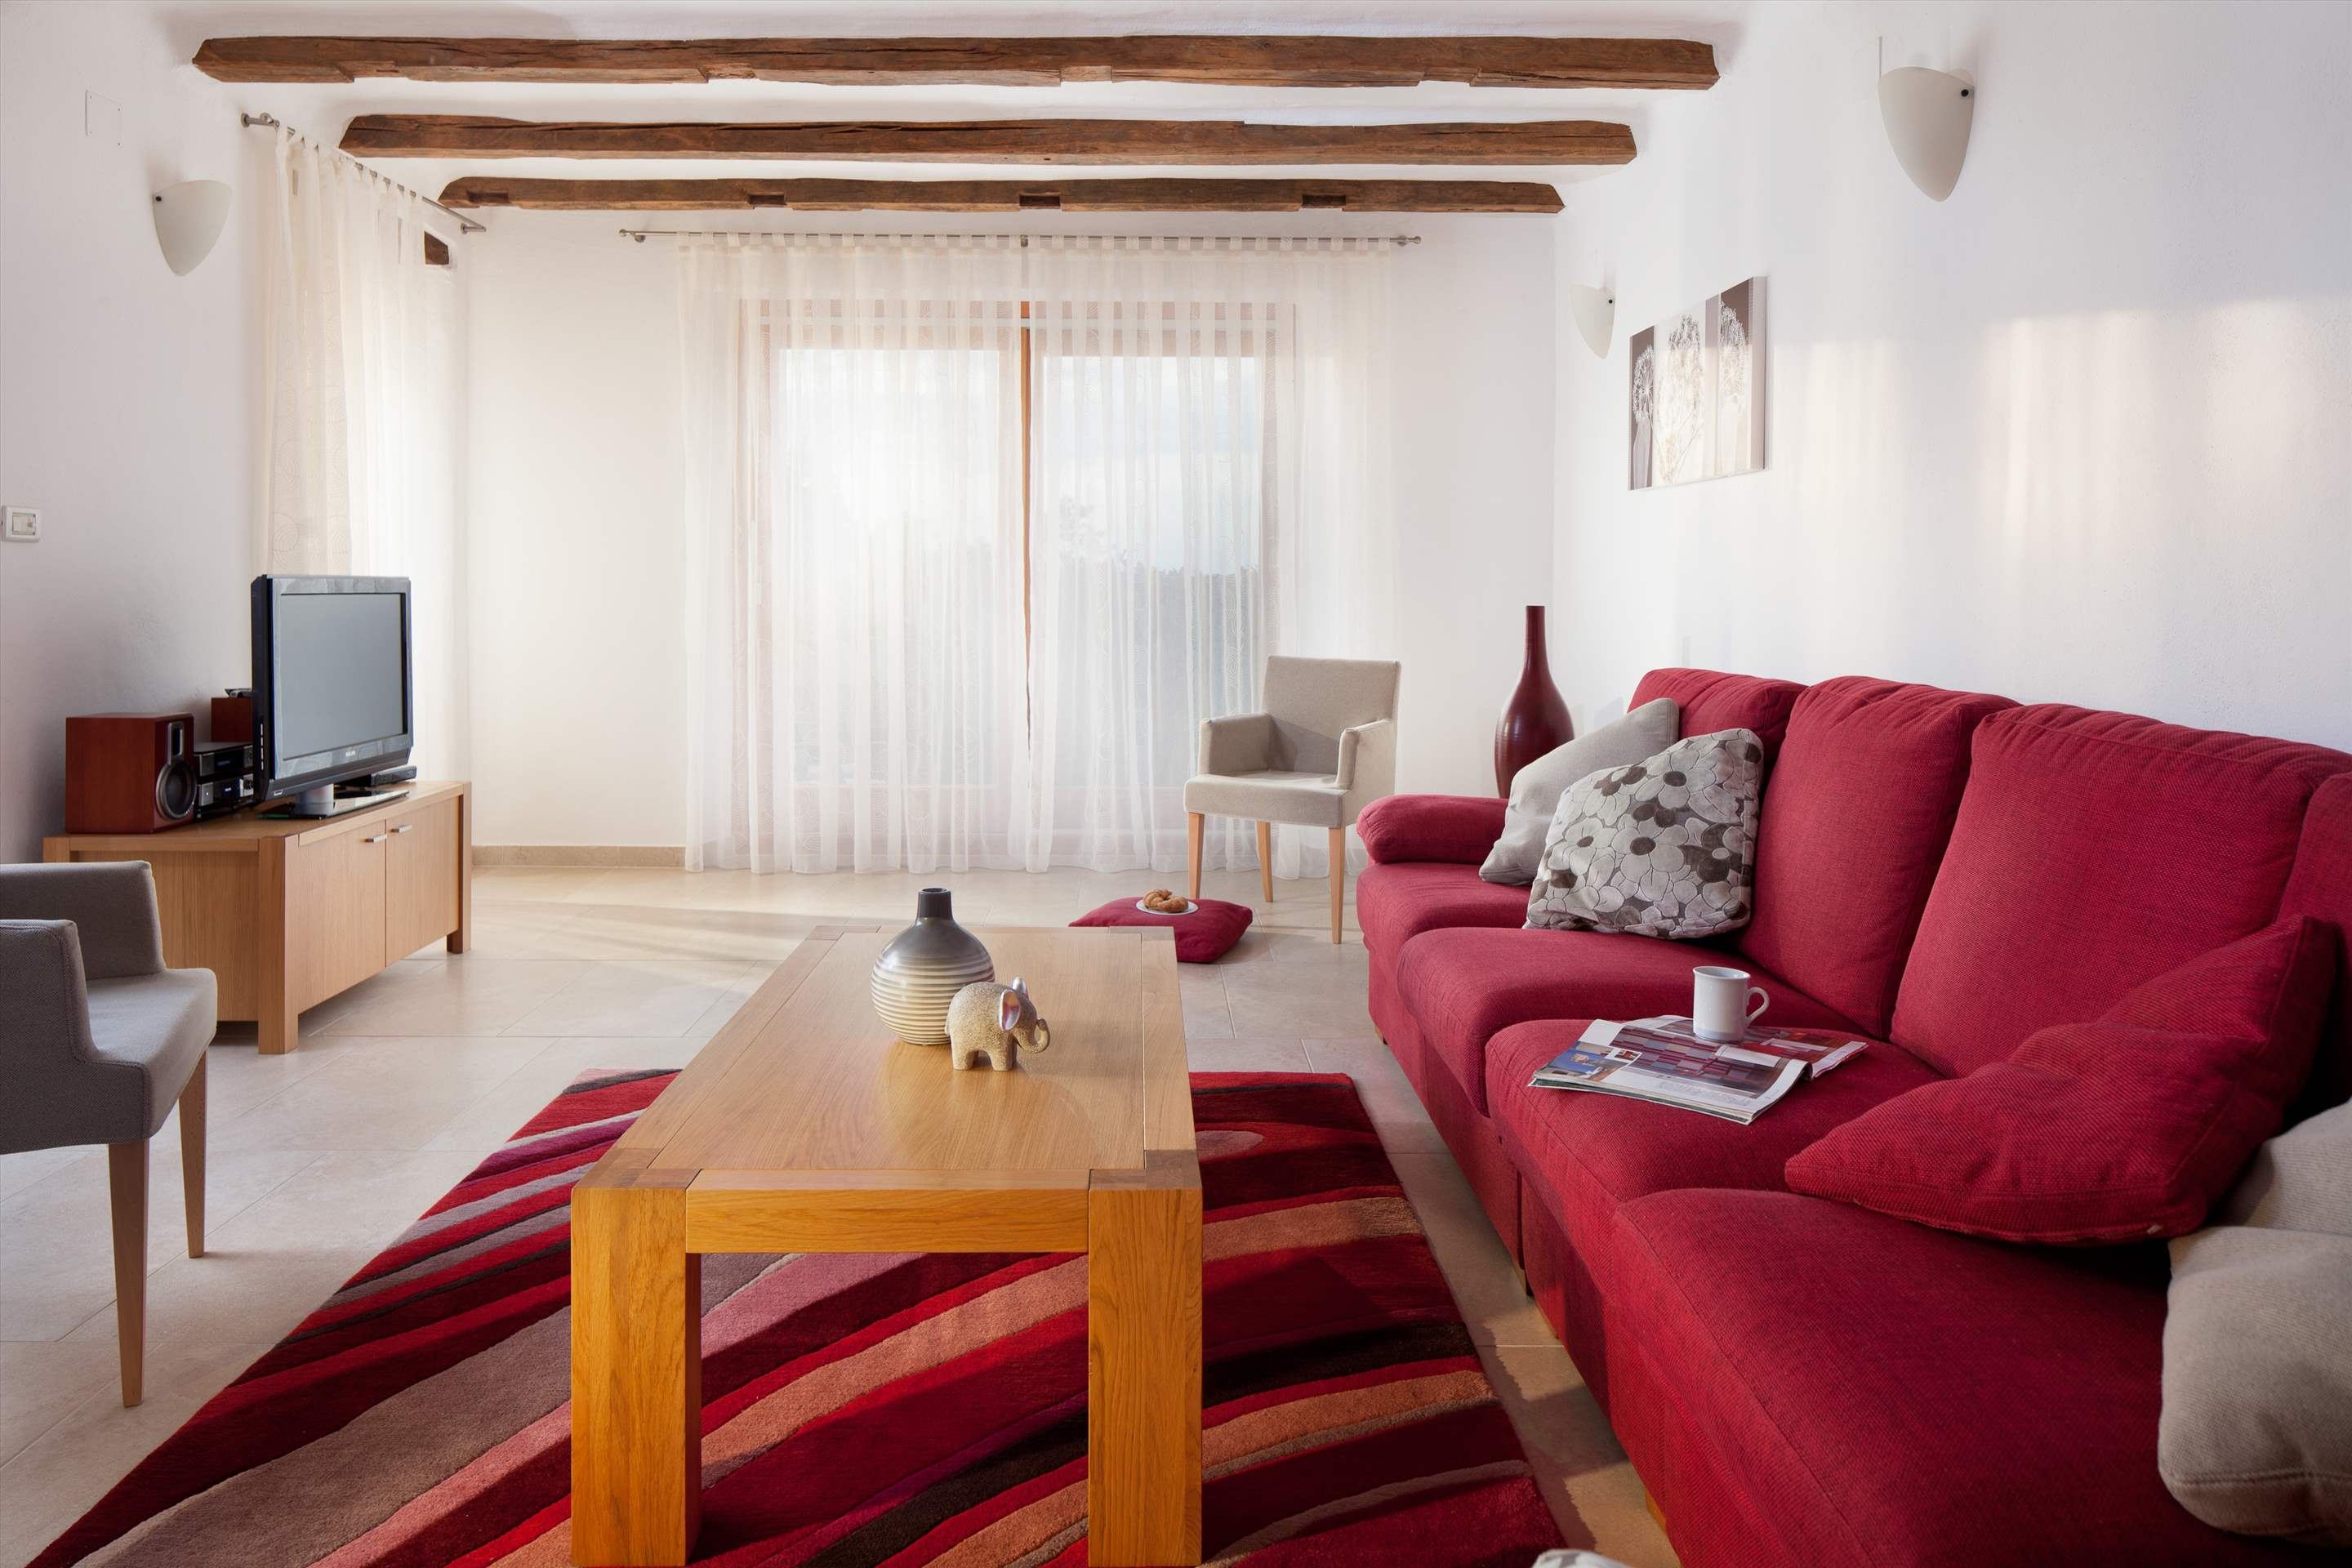 Villa Daymond, 4 bedroom villa in Western Coast- Porec - Umag & Inland, Croatia Photo #7